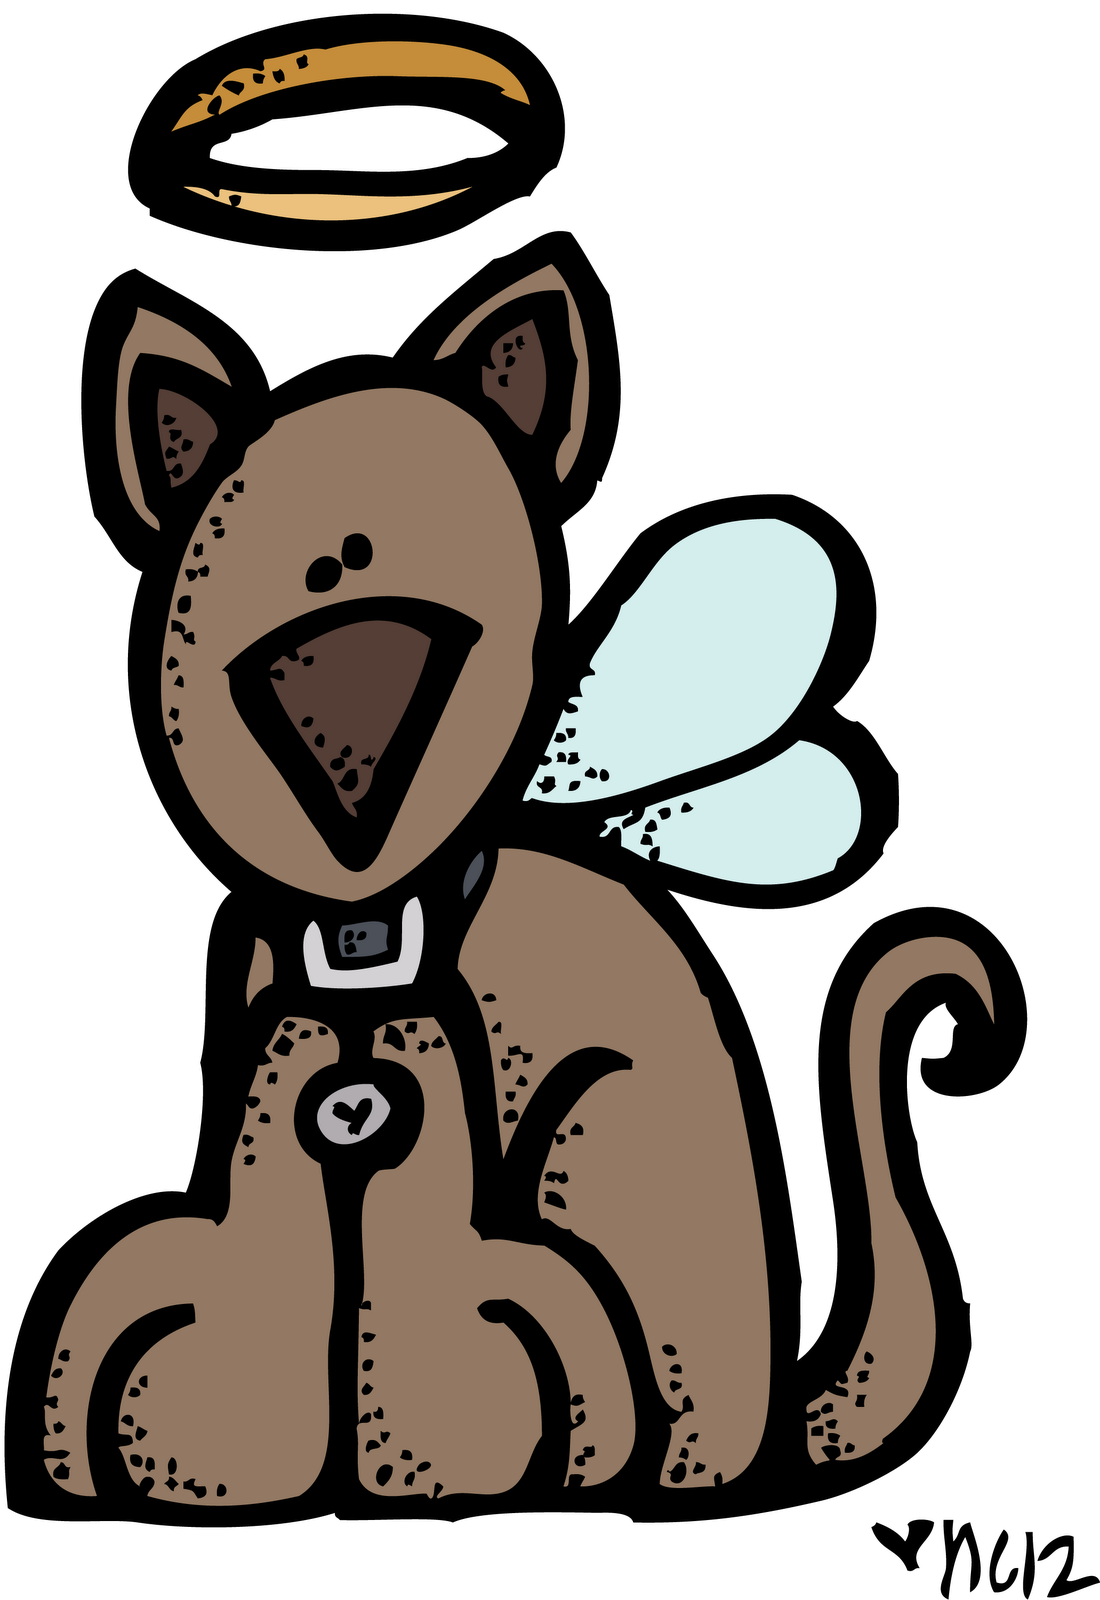 Angel dog clipart svg free stock Top Angel Dog Melonheadz Colored Pictures svg free stock